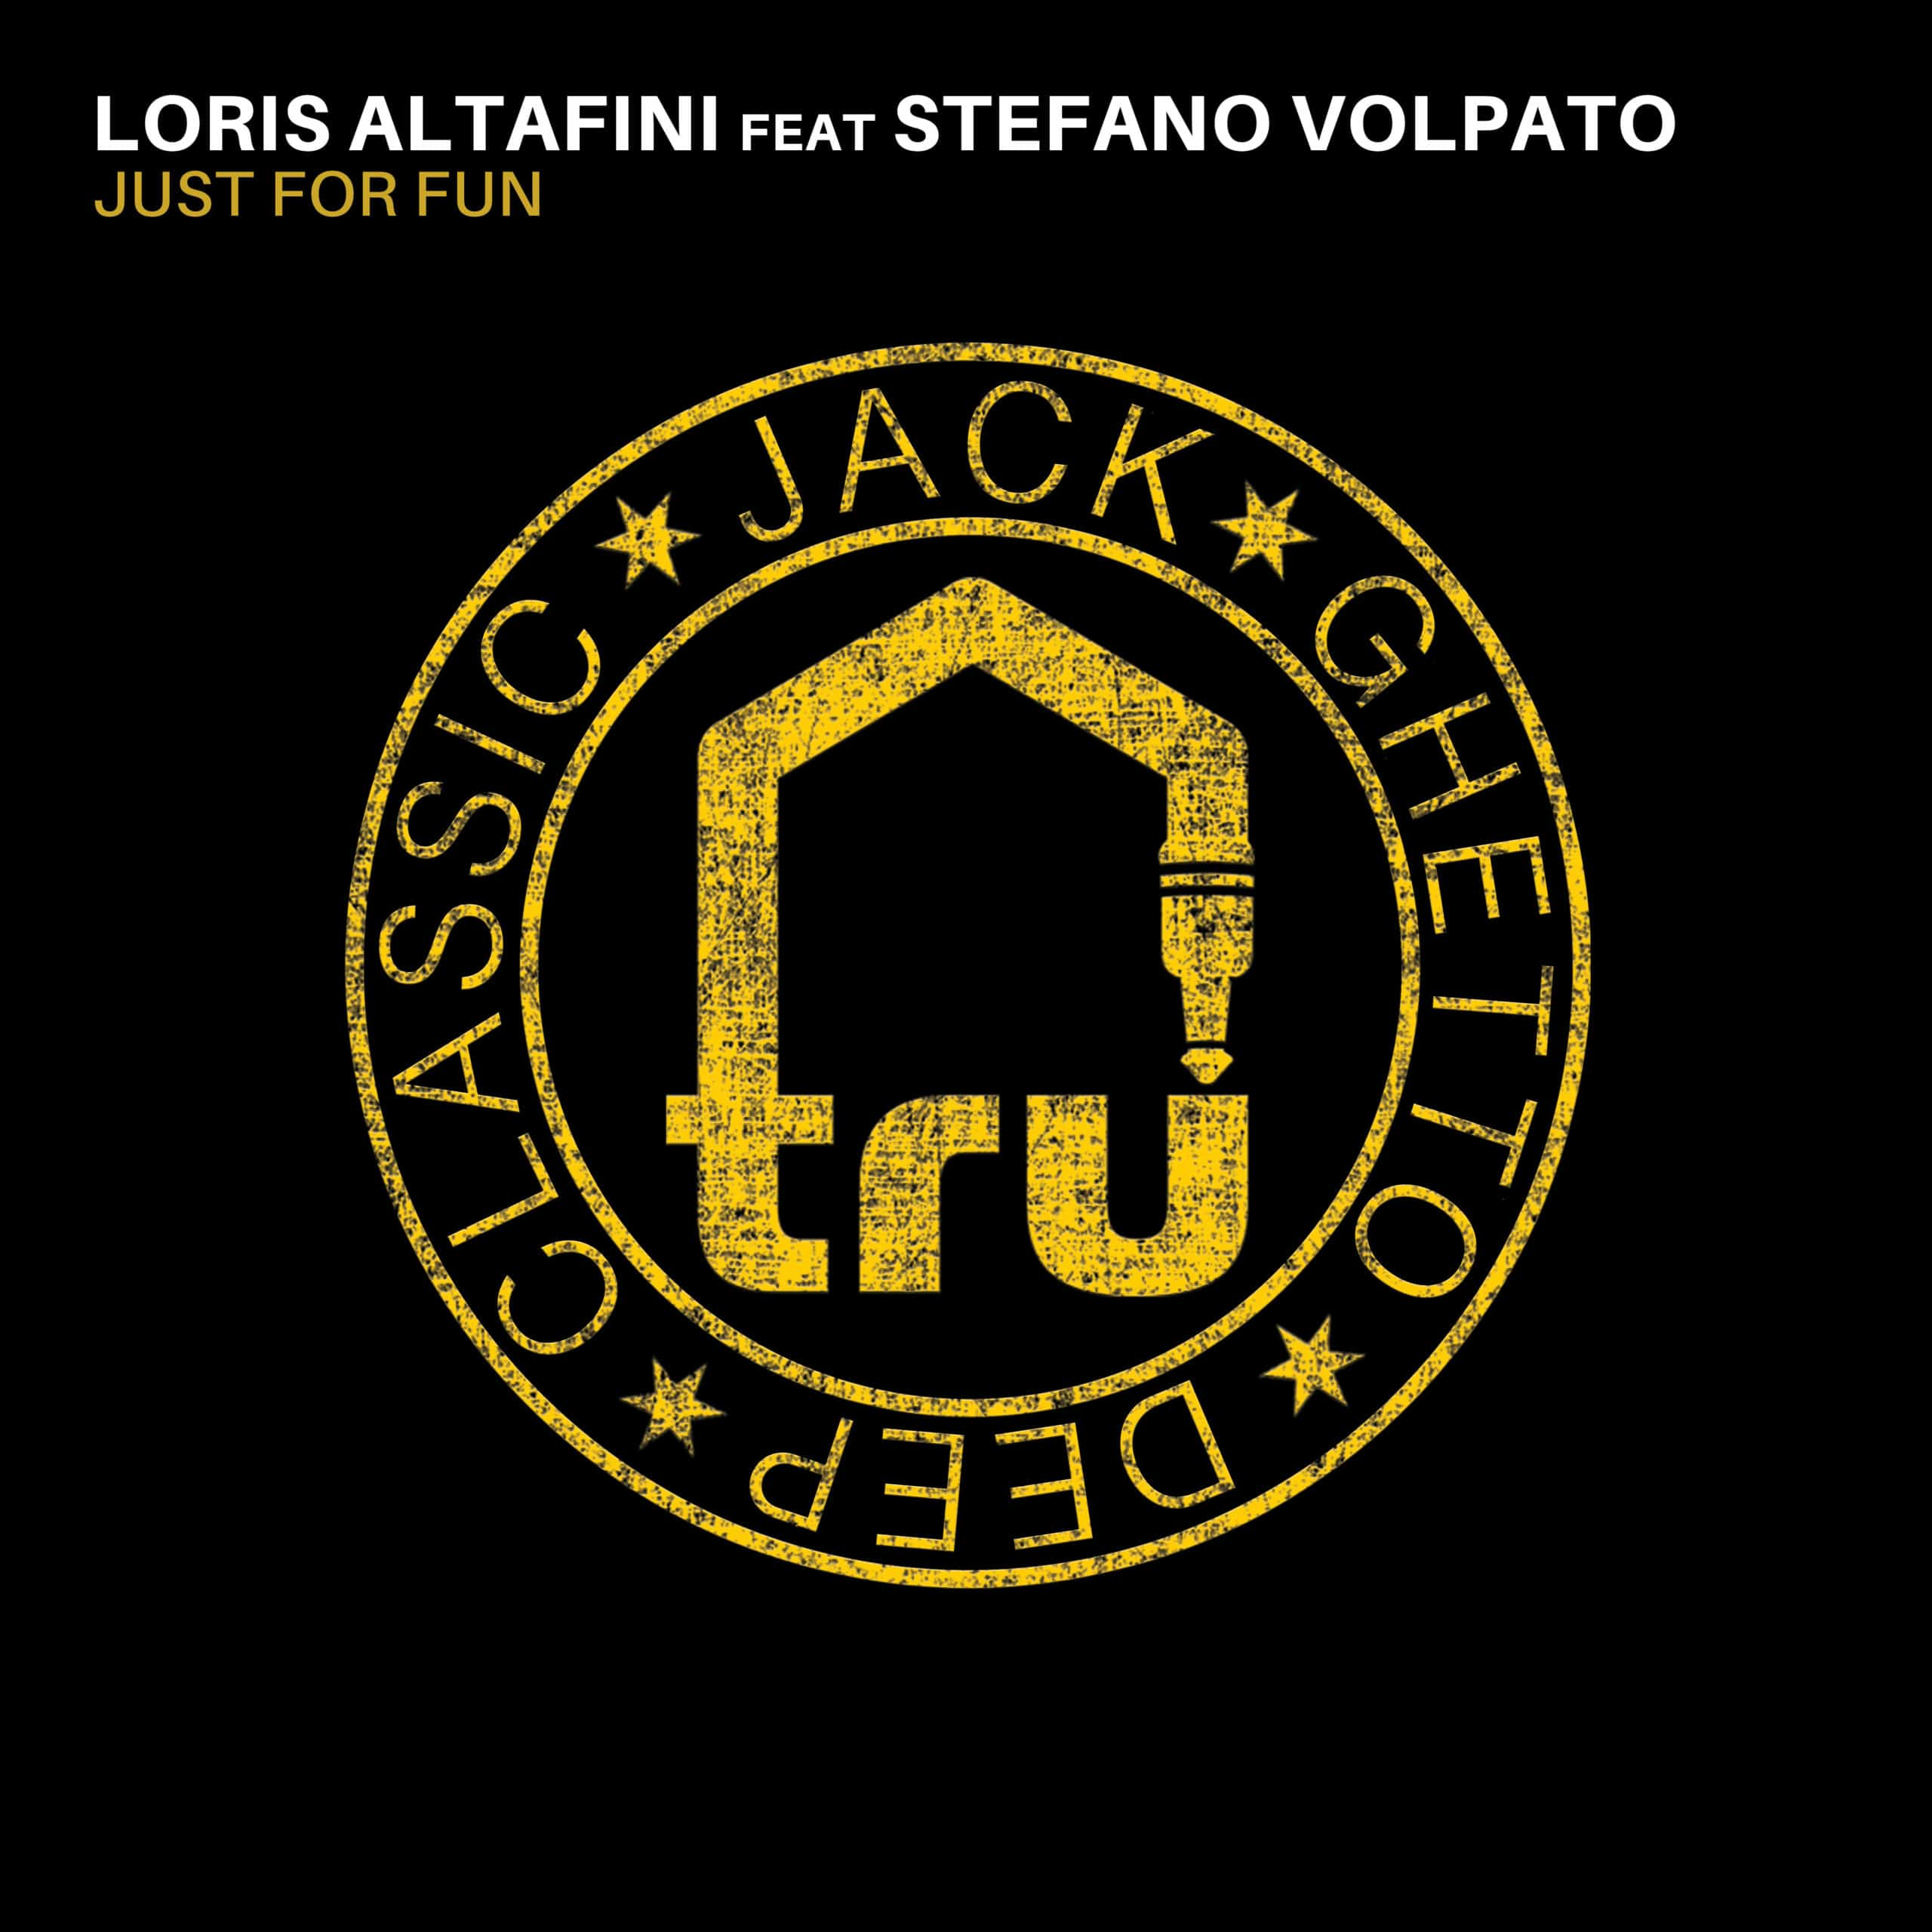 TRU062 – Loris Altafini feat Stefano Volpato – Just For Fun